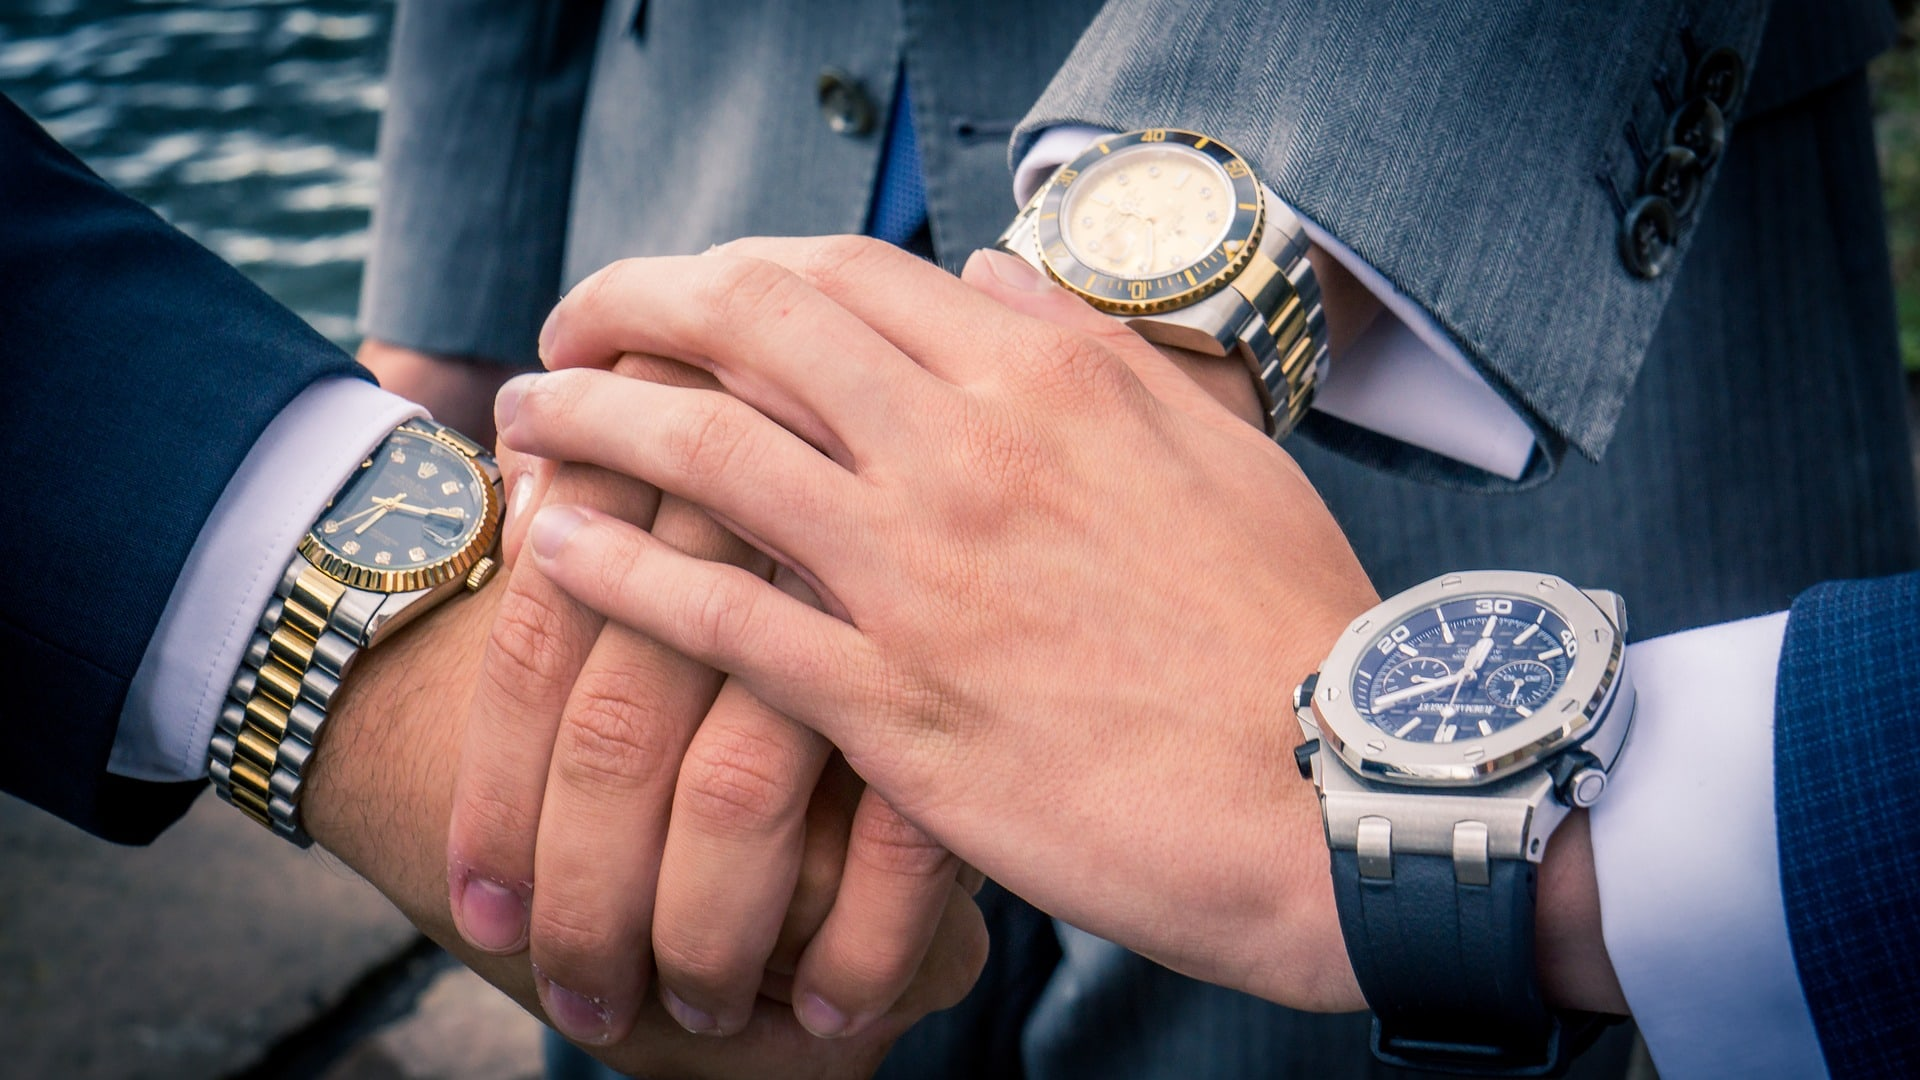 Affordable alternatives to iconic timepieces